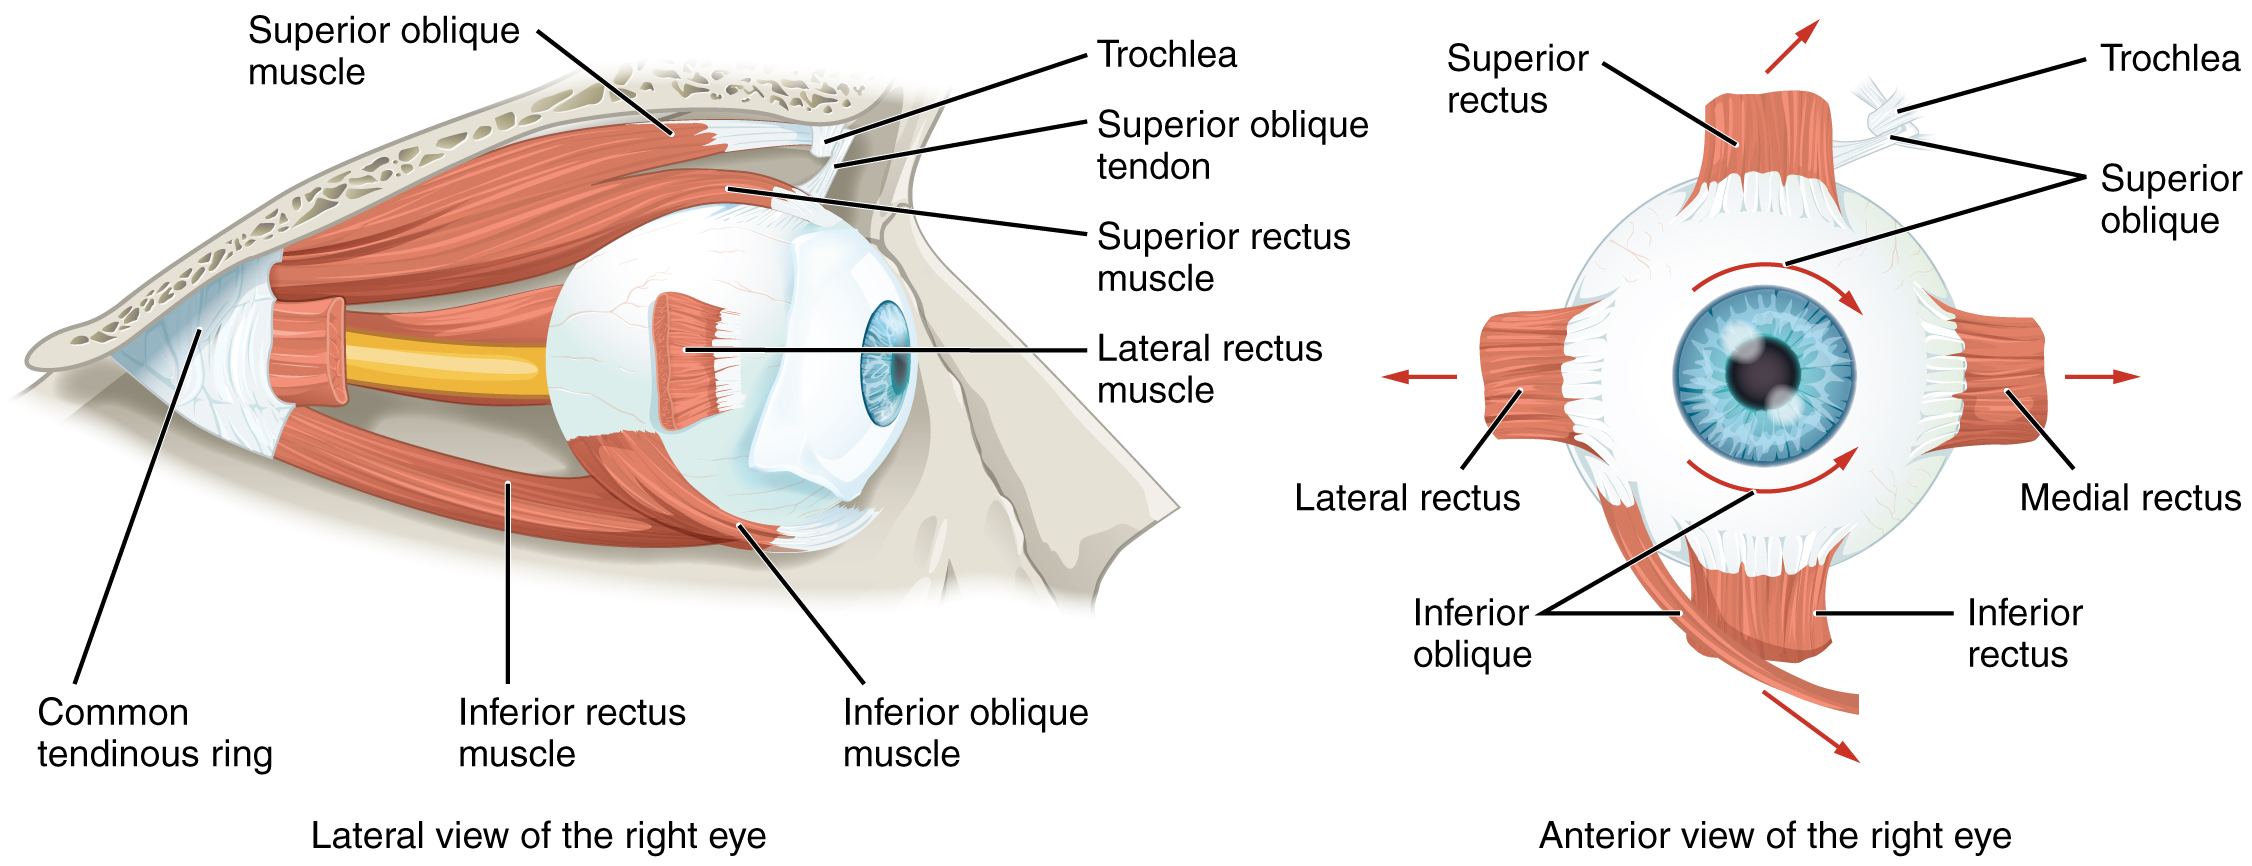 Image of extraocular muscles